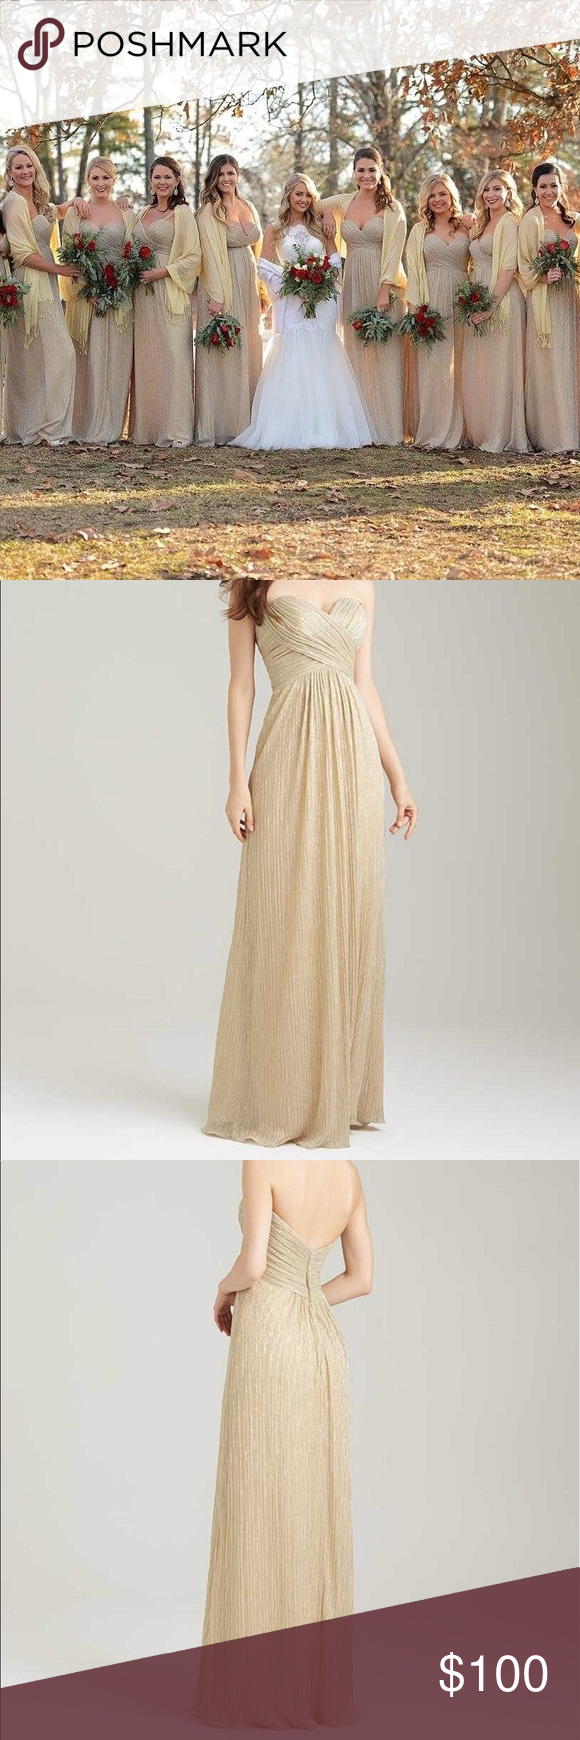 Allure gold bridesmaid dress allure gold shimmer bridesmaid dress allure gold bridesmaid dress ombrellifo Image collections